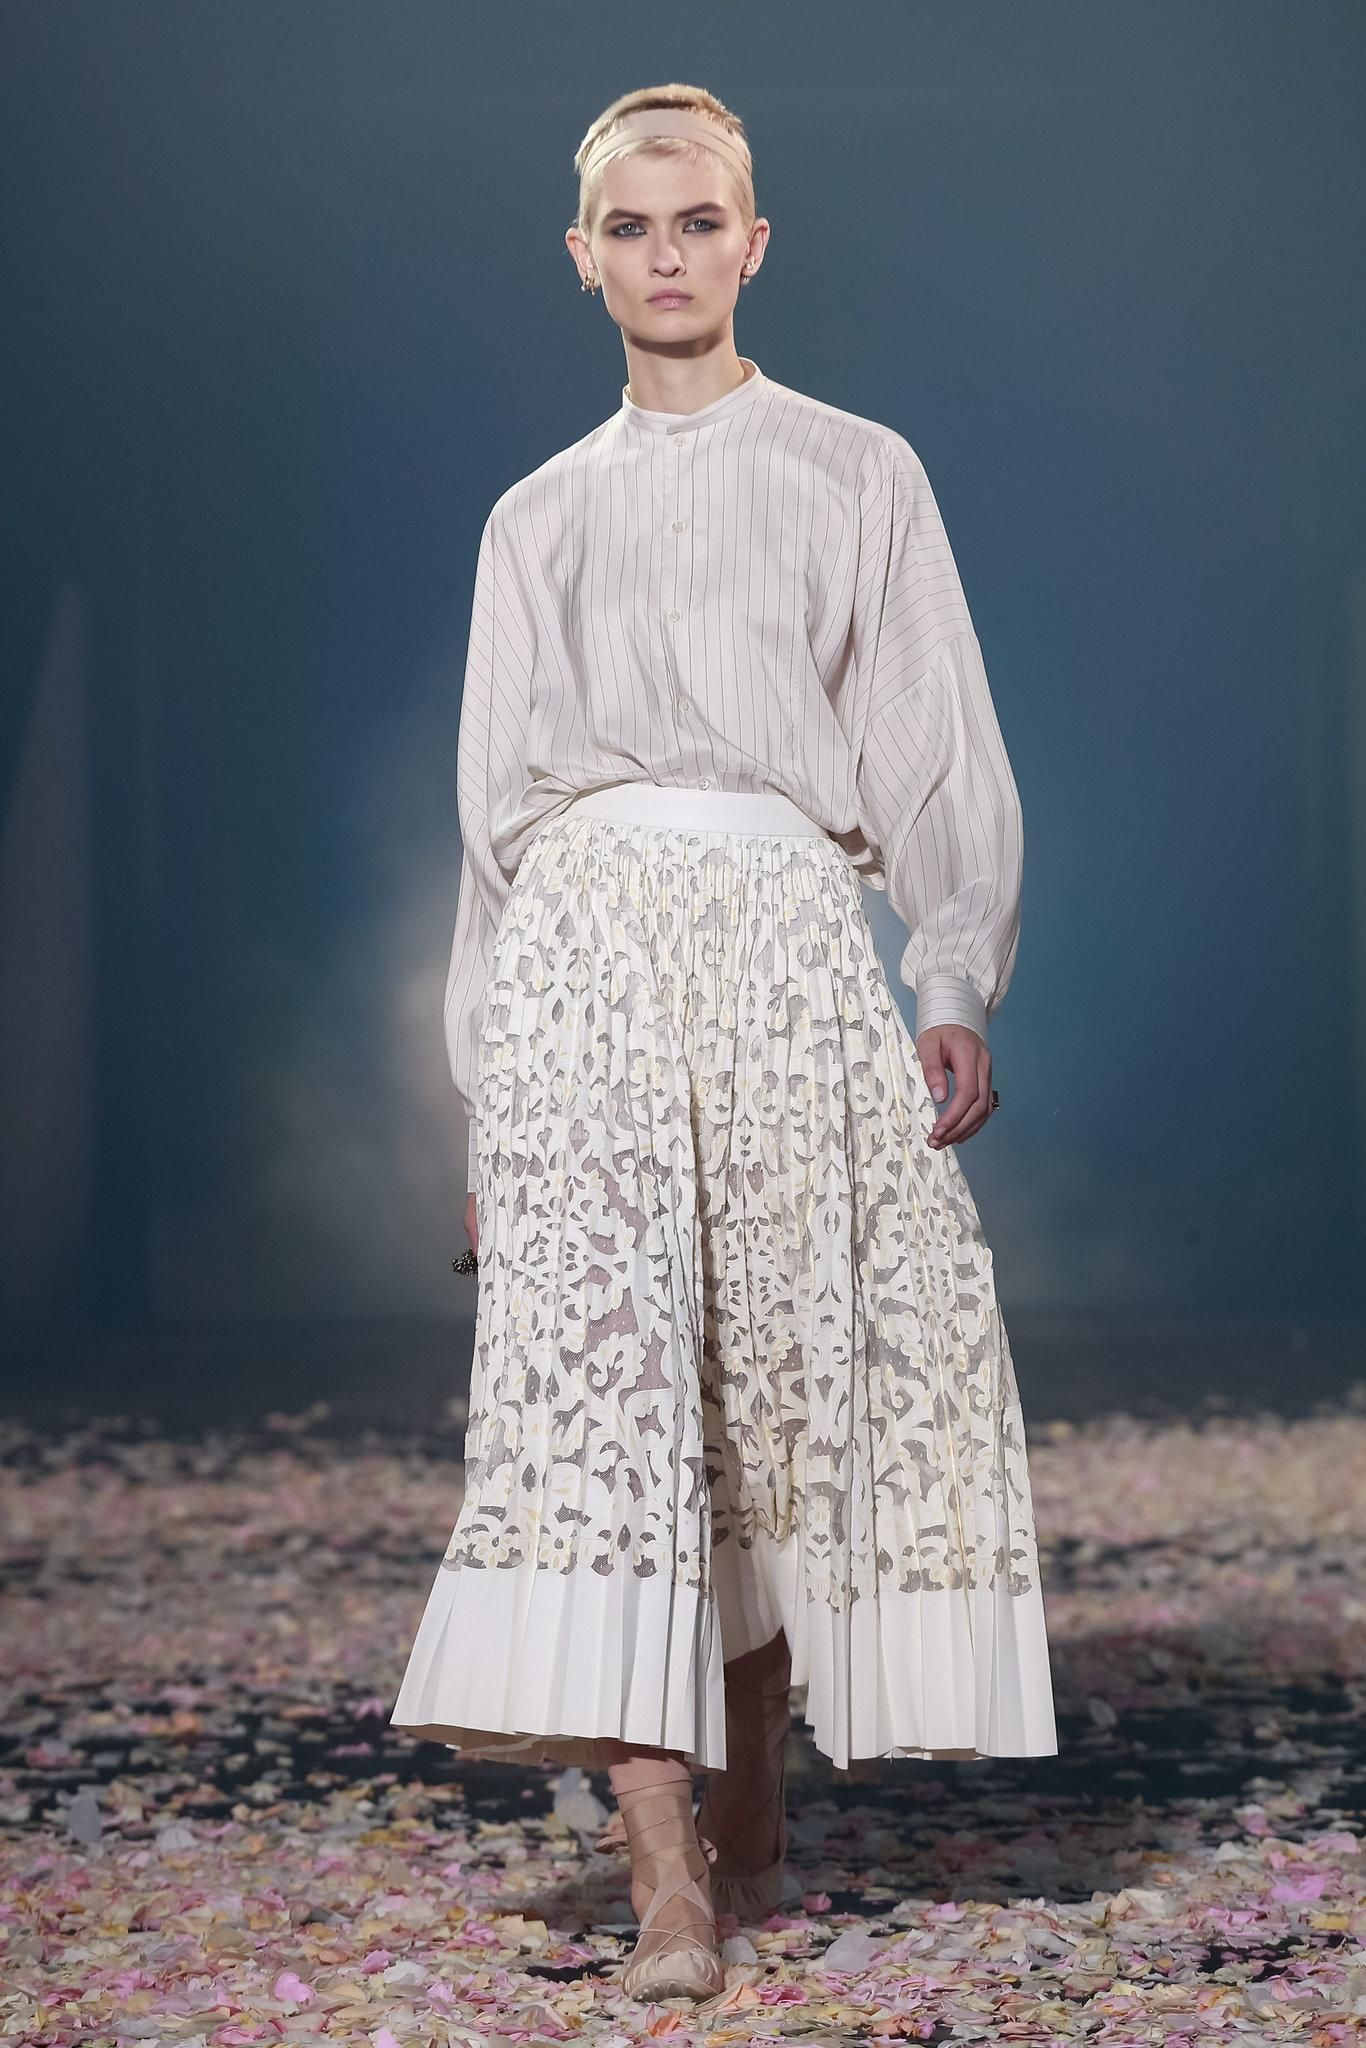 dbd12dace2dcd0 Dior: Spring 2019 - The New York Times | Vee W | Spring, Spring ...